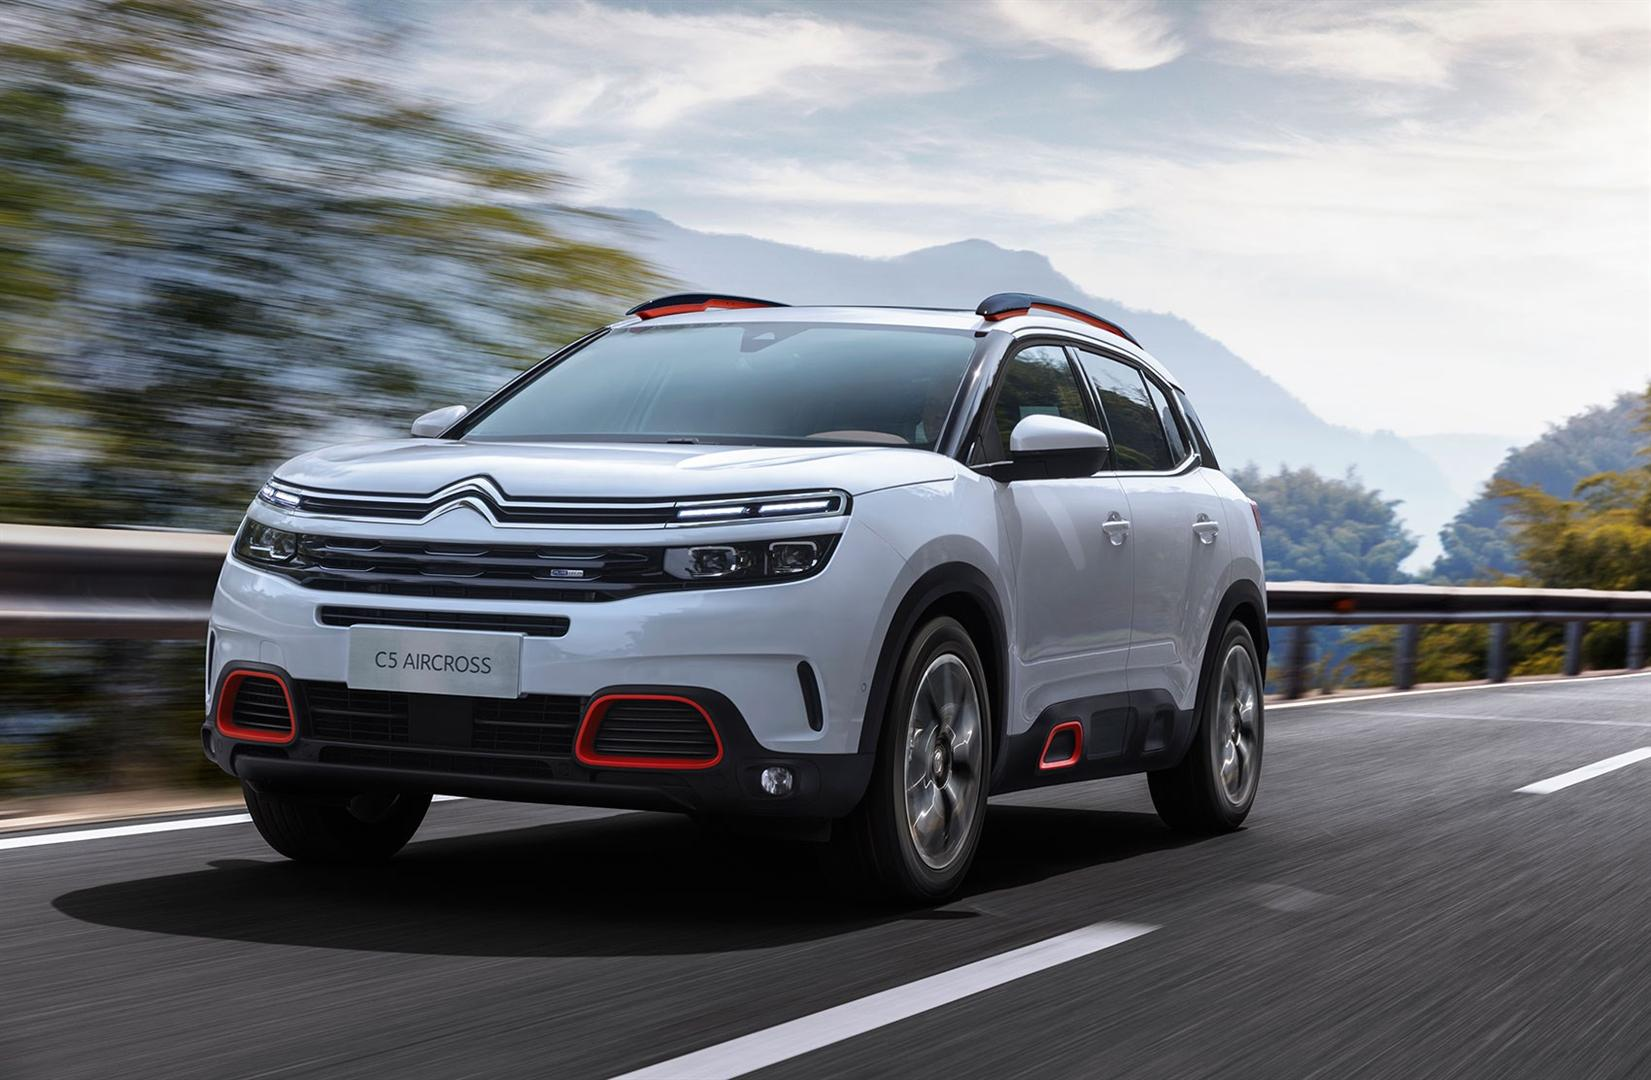 2020 Citroën C5 Aircross Diesel Reviews